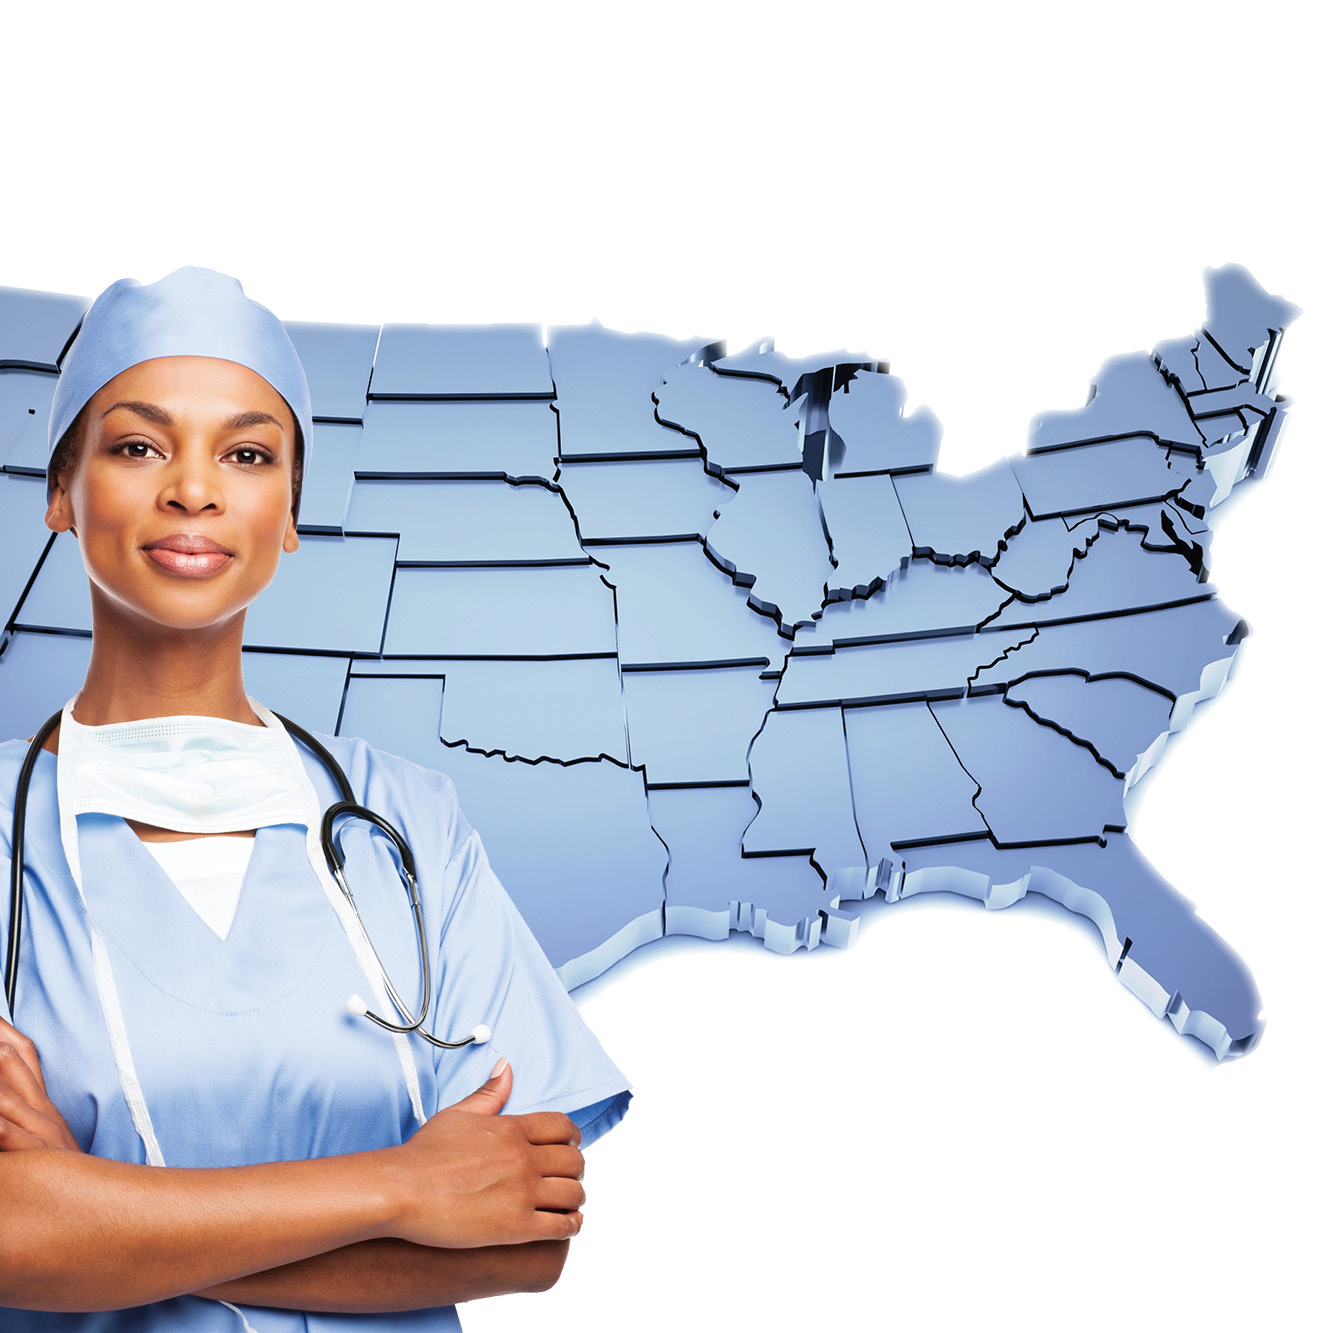 Physician standing by a map of the US